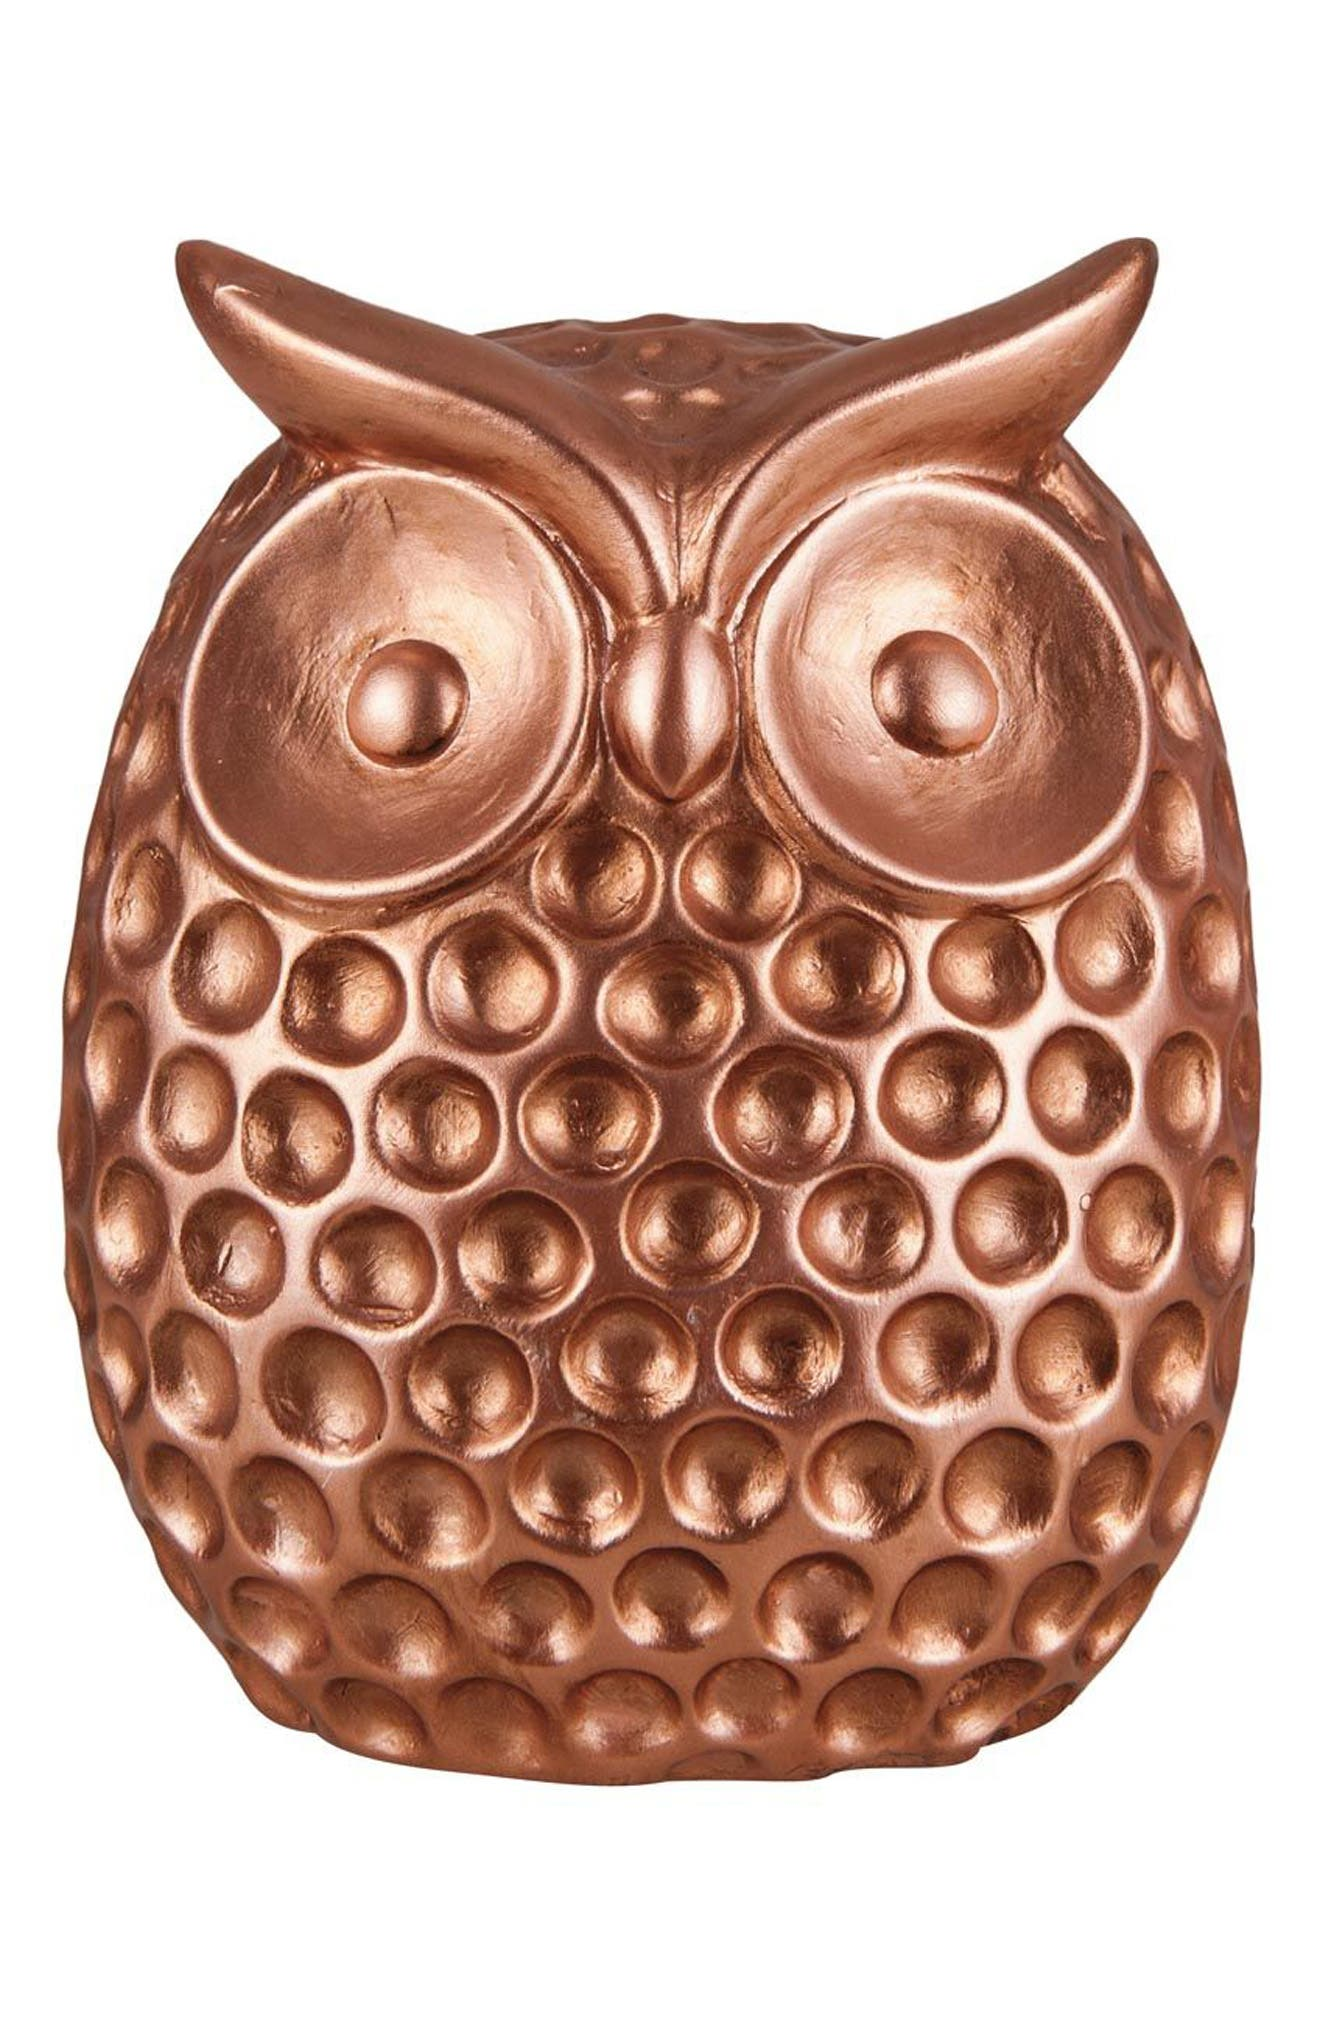 Alternate Image 1 Selected - Foreside Ceramic Owl Statue